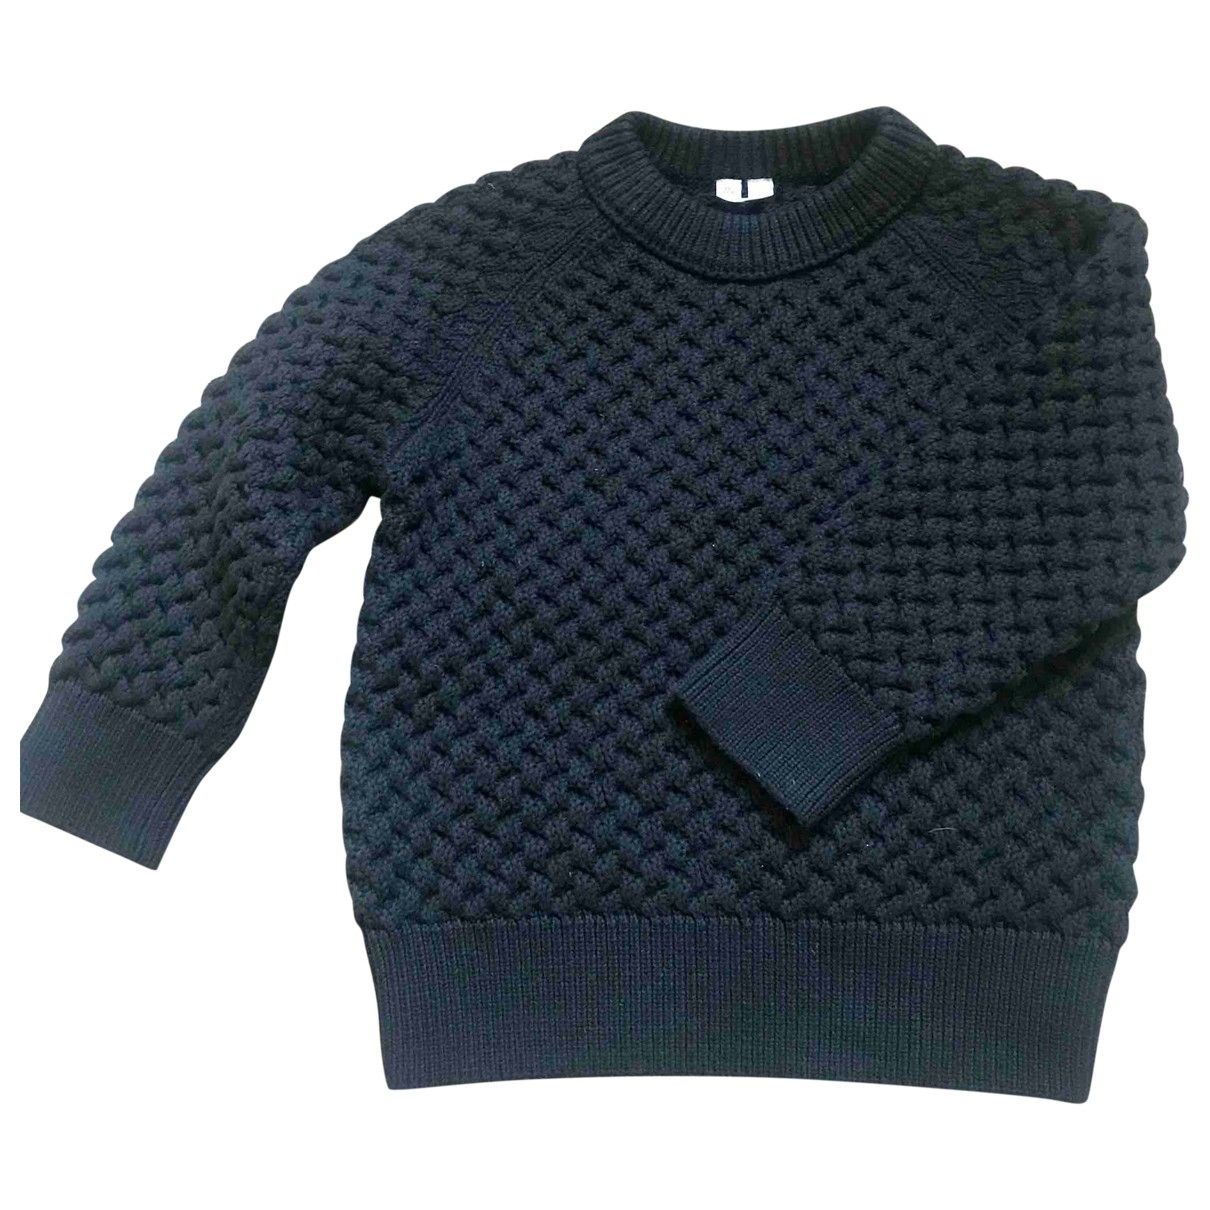 Arket \N Black Cotton Knitwear for Kids 3 years - up to 98cm FR